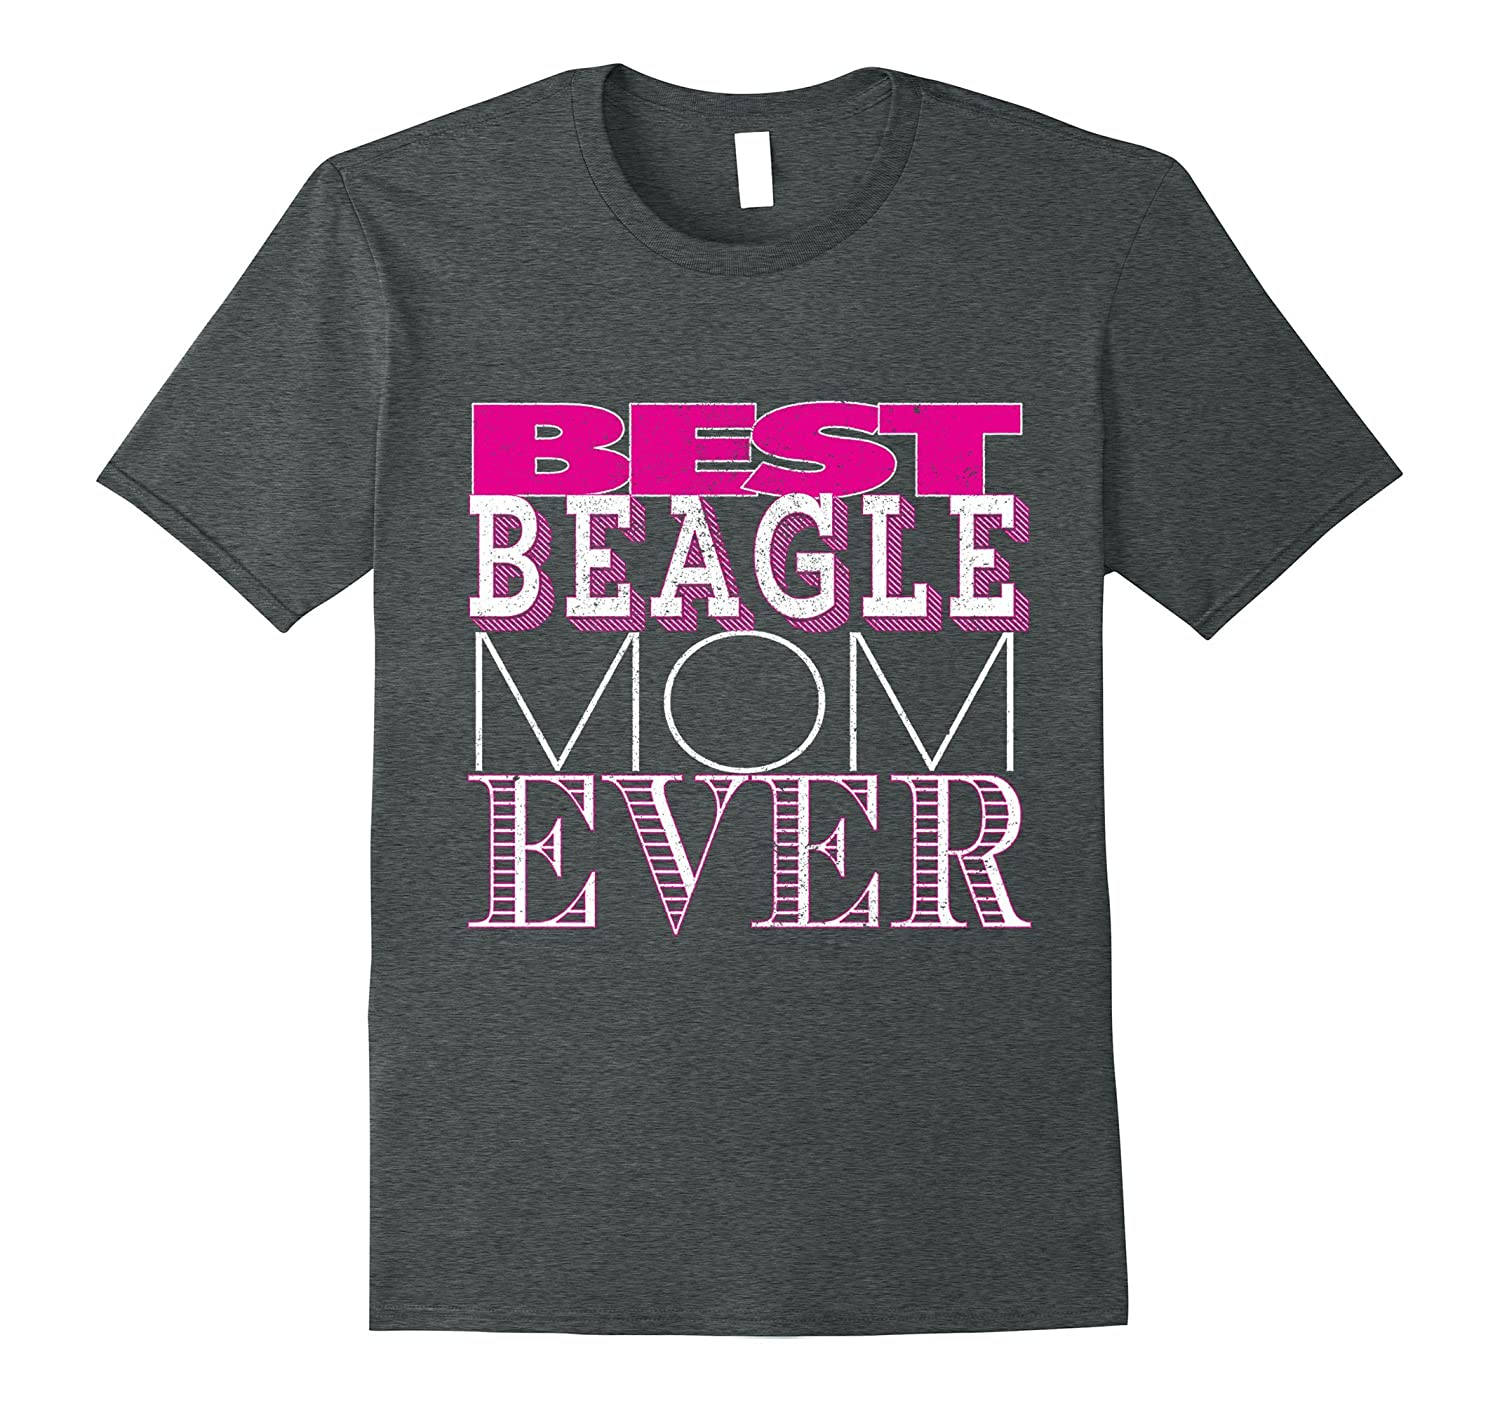 Best Beagle Mom Ever Shirt – Beagle dog Tshirt